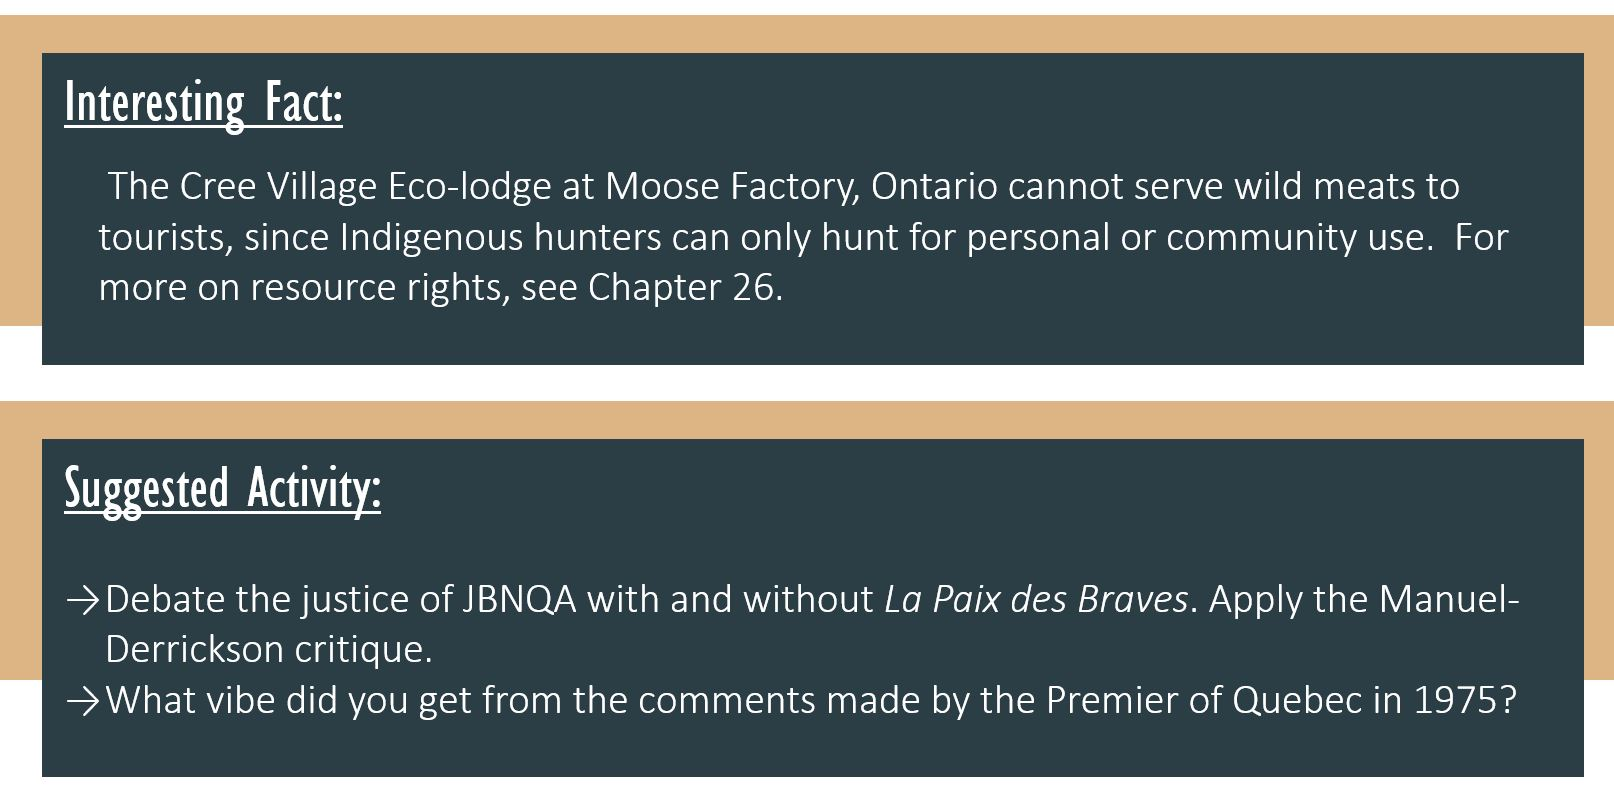 Interesting Fact: The Cree Village Eco-lodge at Moose Factory, Ontario cannot serve wild meats to tourists, since Indigenous hunters can only hunt for personal or community use. For more on resource rights, see Chapter 26. Suggested Activity: Debate the justice of JBNQA with and without La Paix des Braves.Apply the Manuel-Derrickson critique.